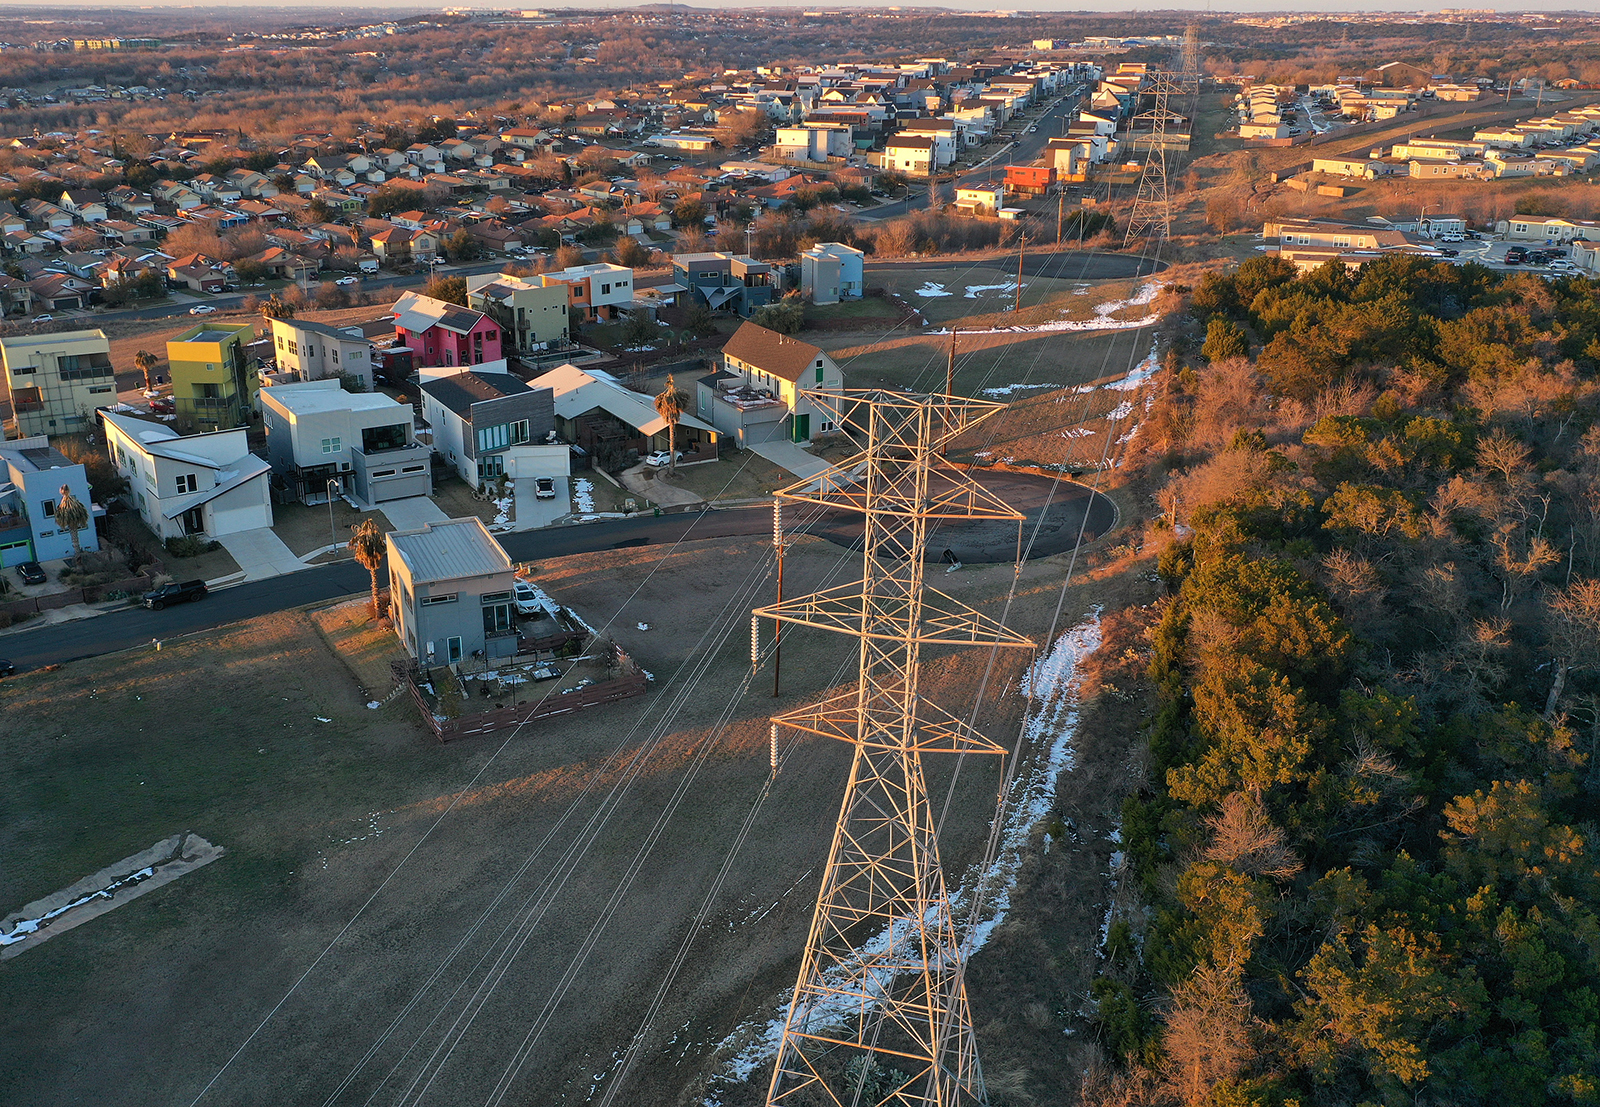 An aerial view from a drone shows electrical lines running through a neighborhood on February 19, in Austin, Texas.